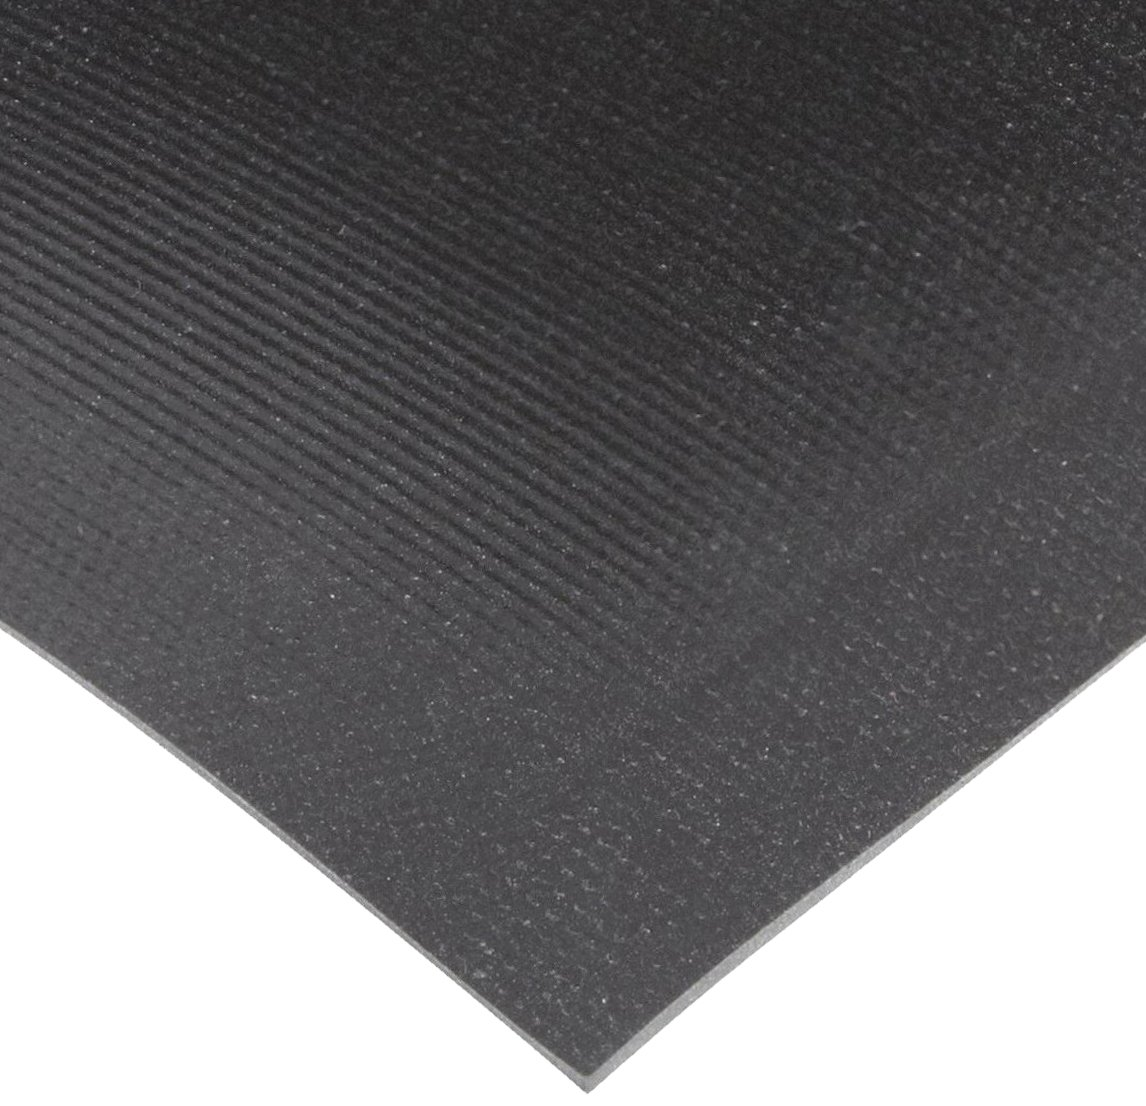 for Main Entranceways and Heavy Traffic Areas 3 Width x 5 Length x 5//16 Thickness Gray 3/' Width x 5/' Length x 5//16 Thickness Superior Manufacturing 141S0035GY Notrax 141 Ovation Entrance Mat